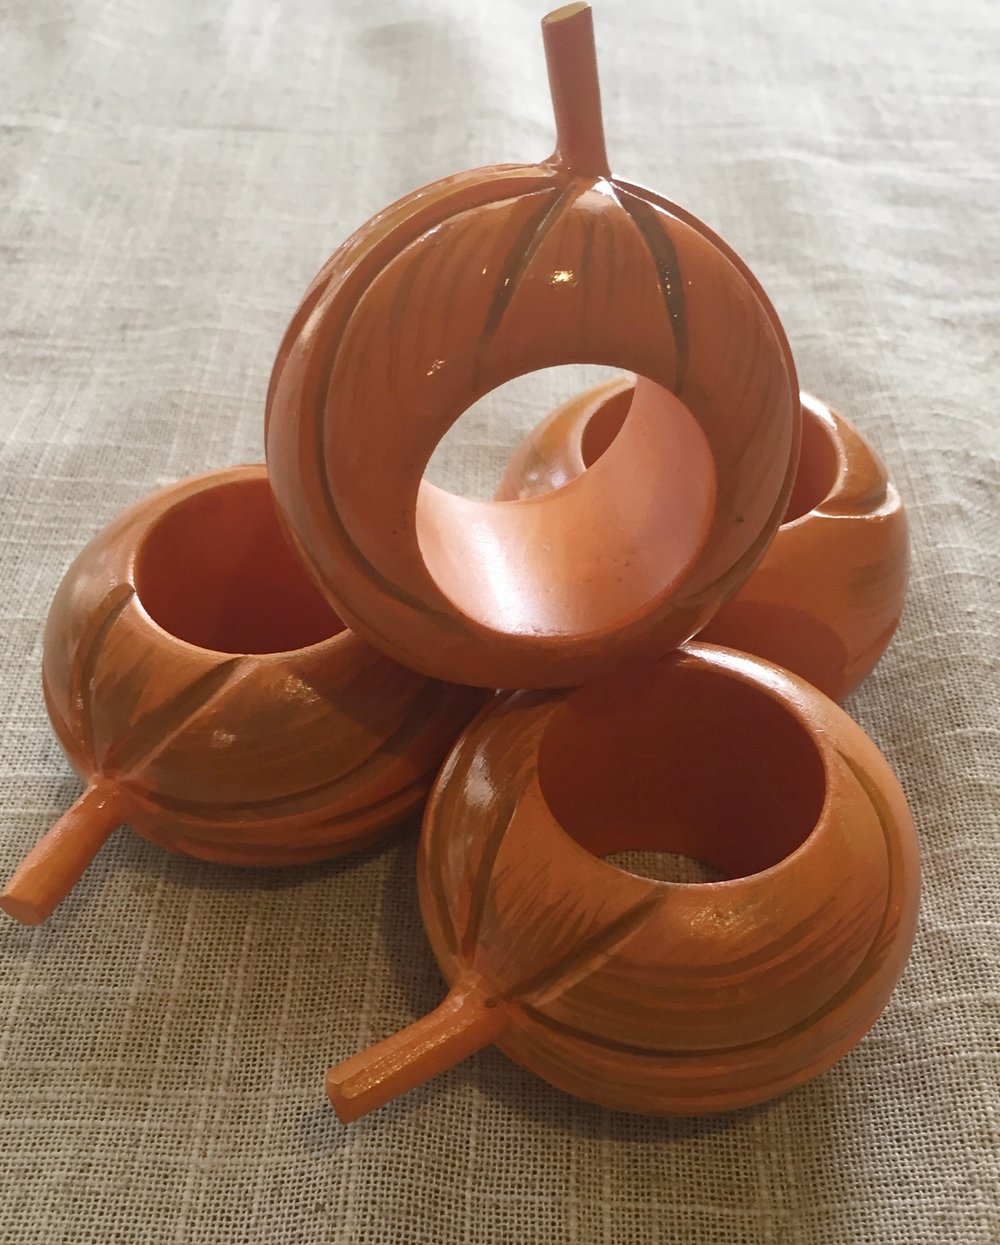 4-6 NAPKIN RING HOLDERS